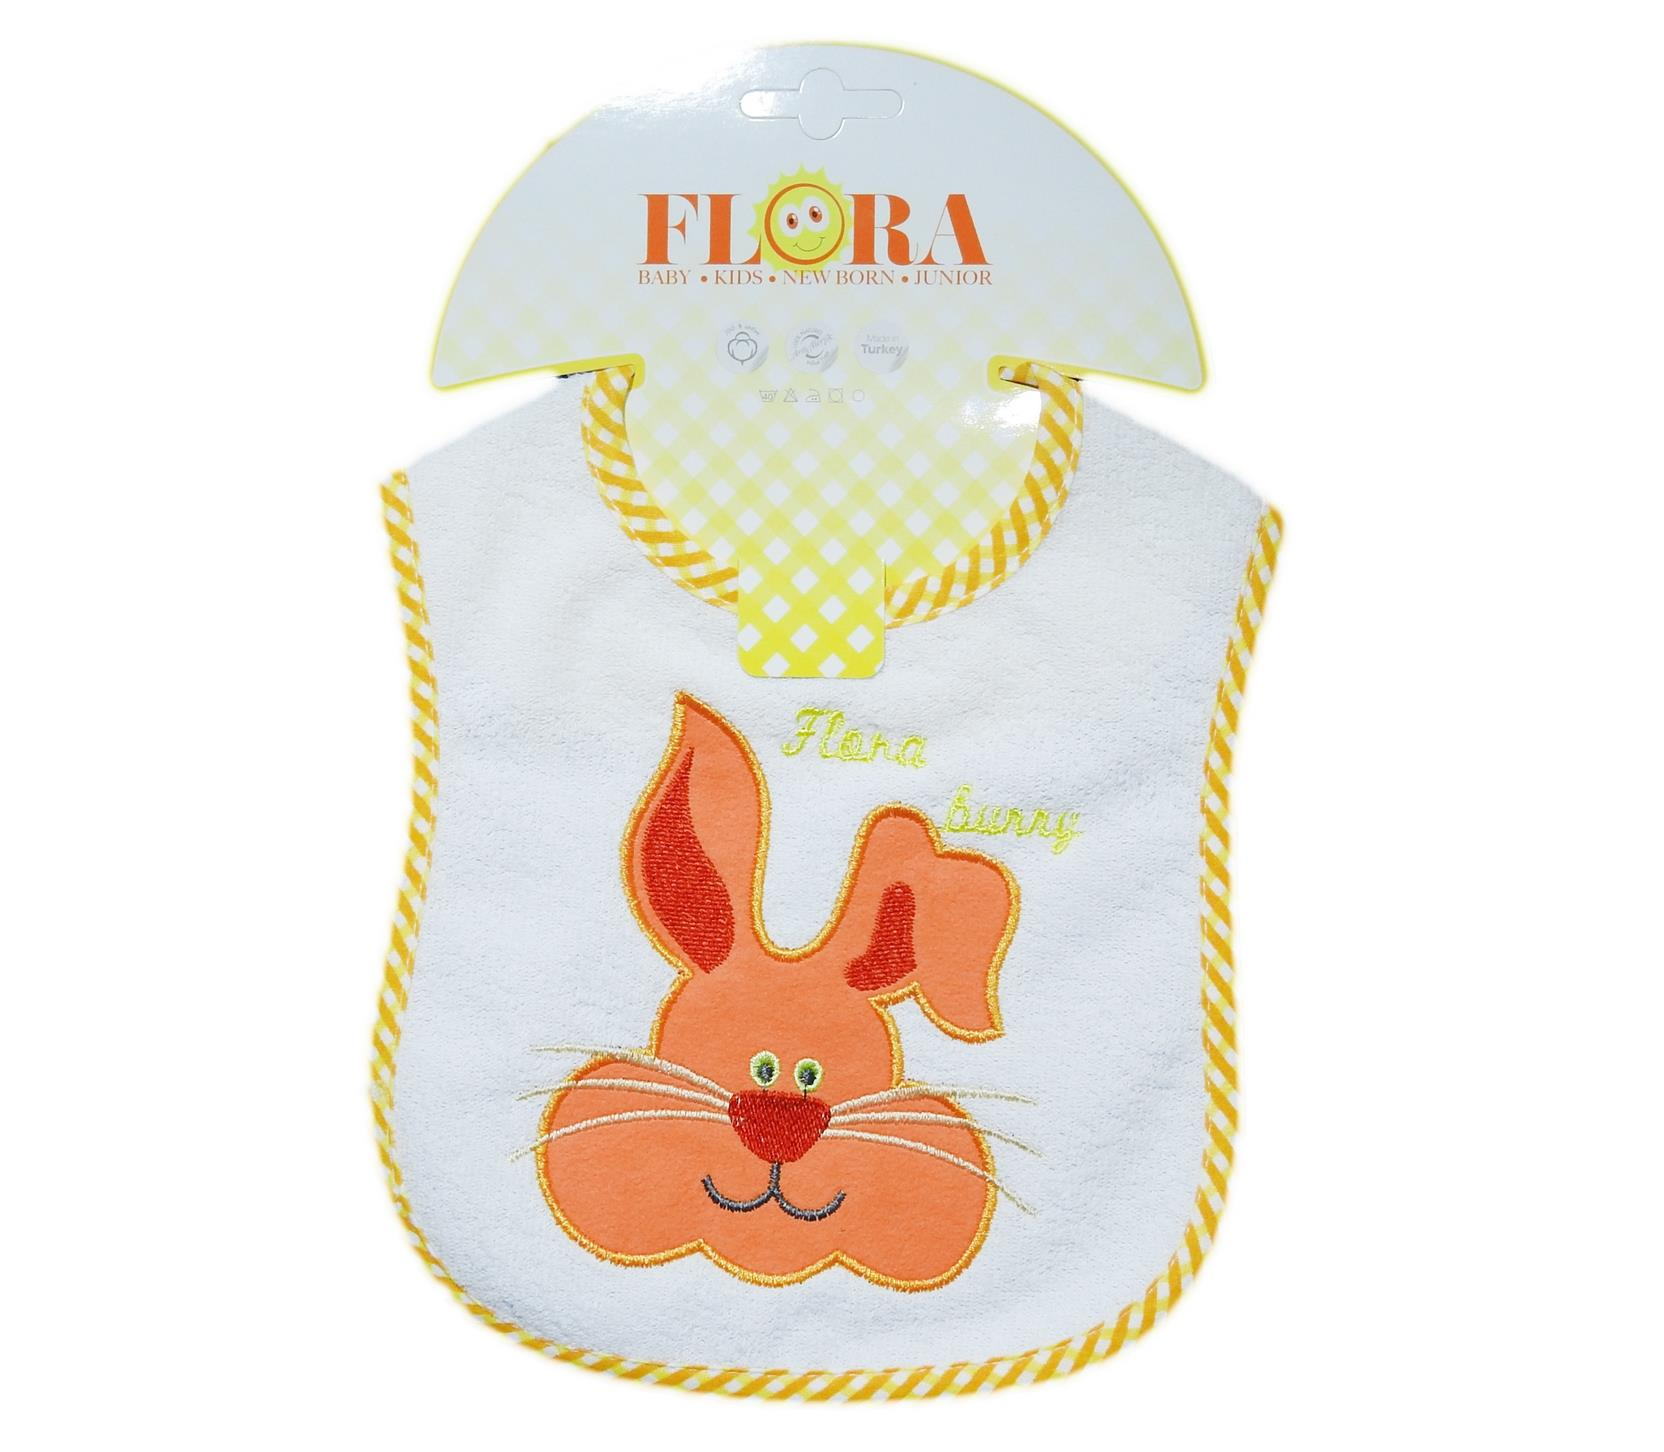 2011 Wholesale rabbit printed bib for baby clothes 6 pieces in package